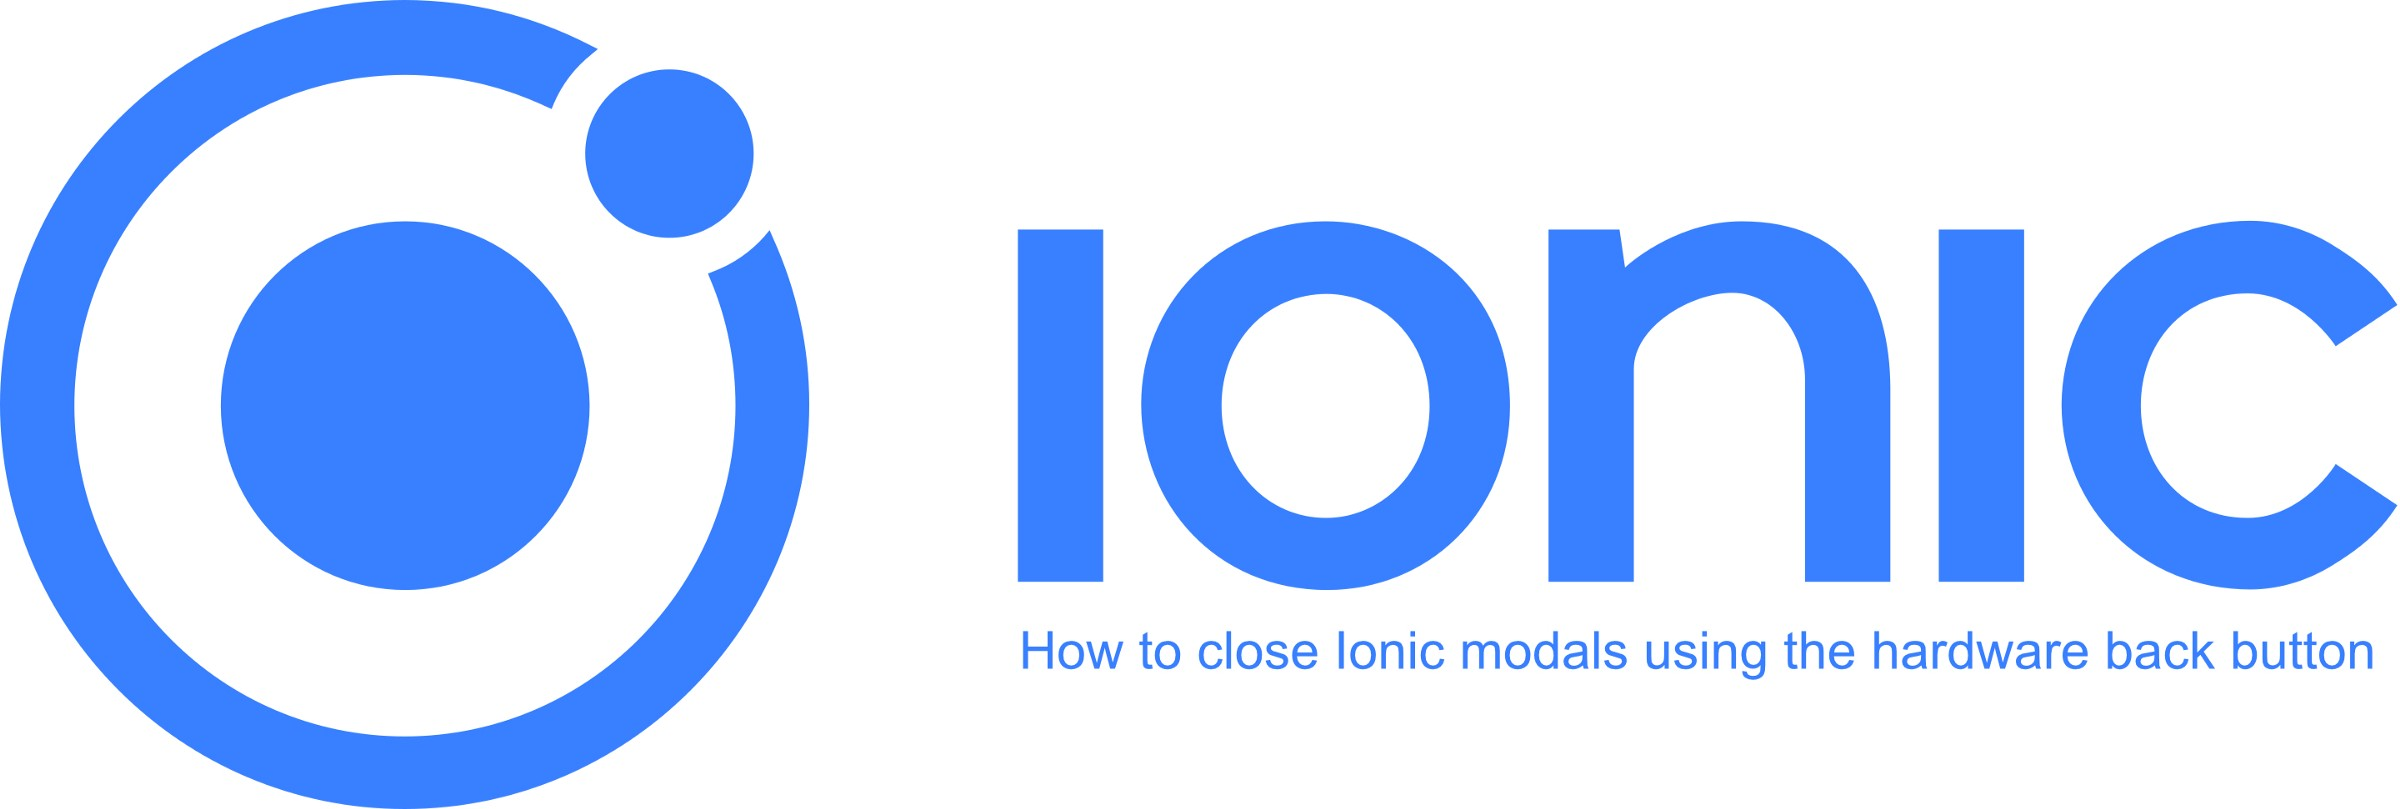 How to close Ionic modals using the hardware back button - DEV